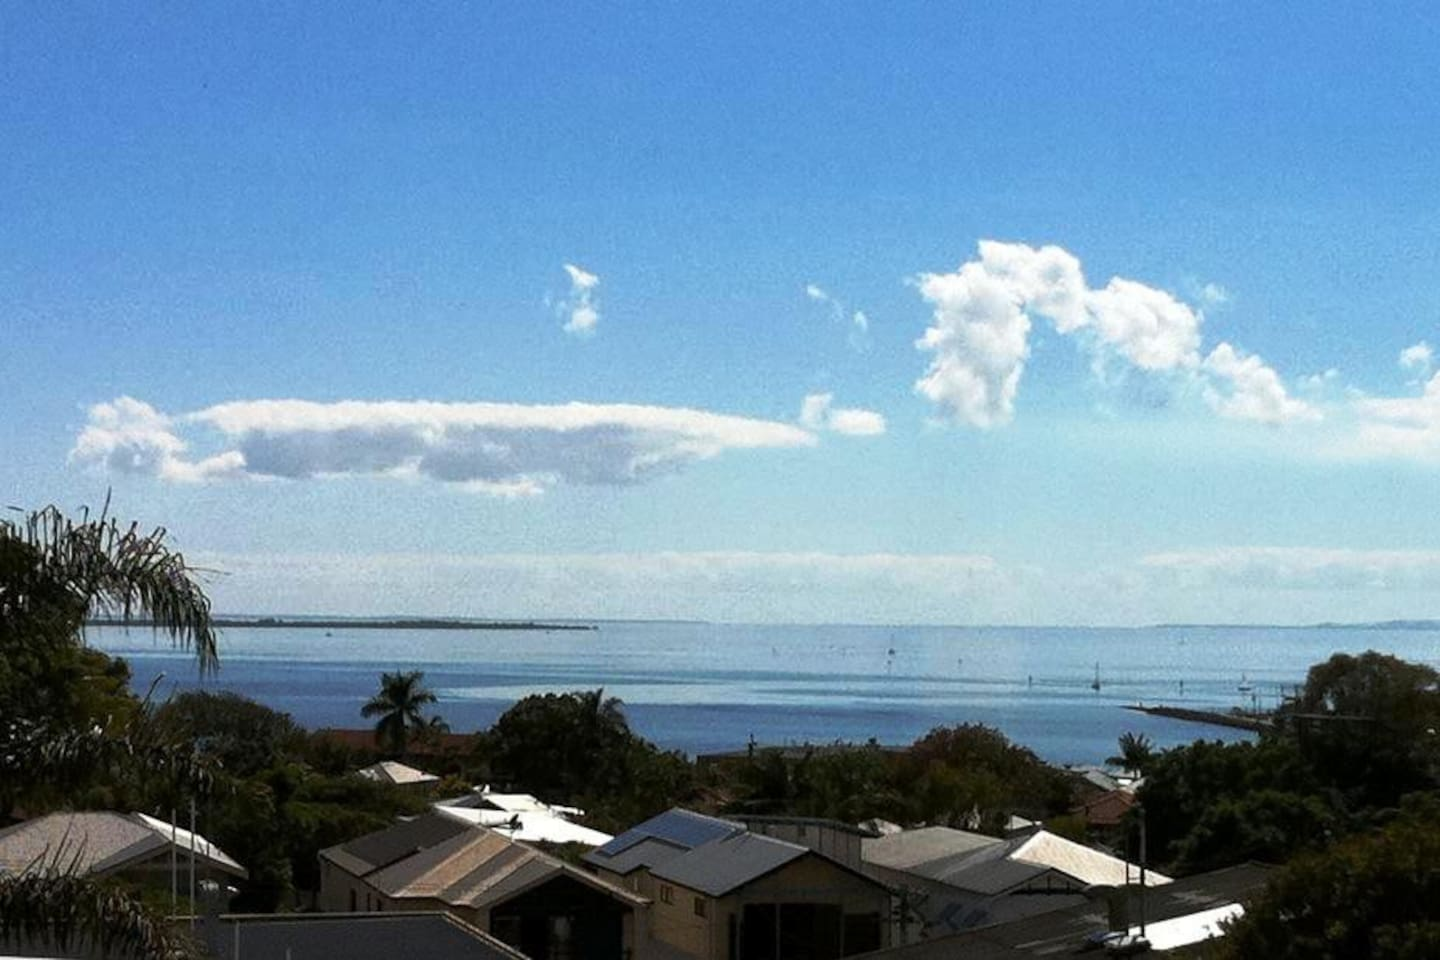 Moreton Bay view from top deck